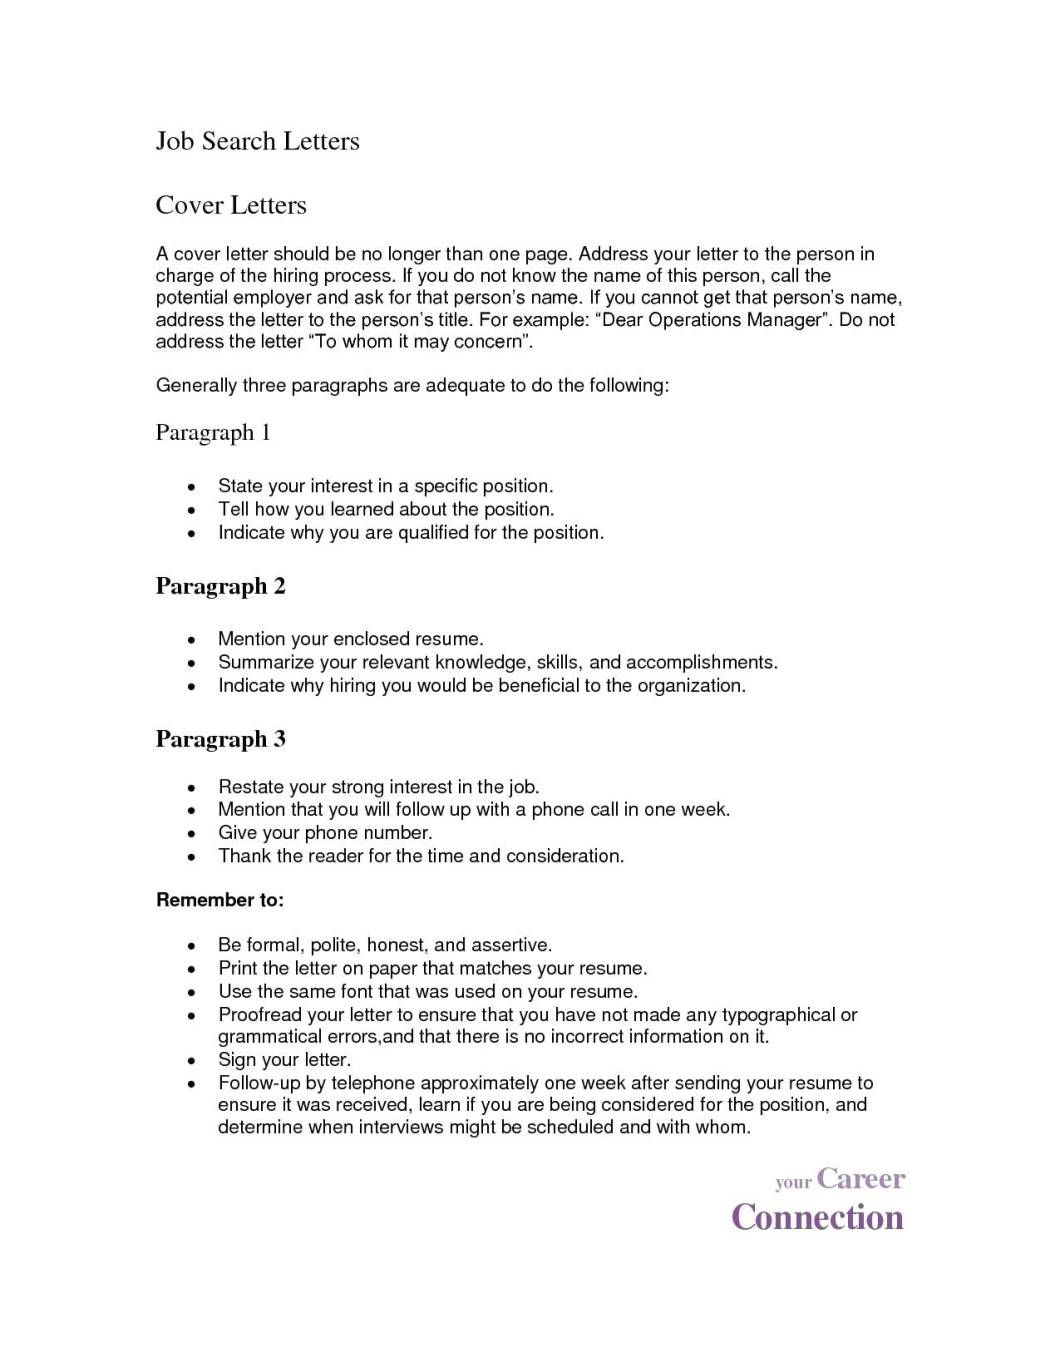 Cover Letter Template Overleaf One page resume, Cover